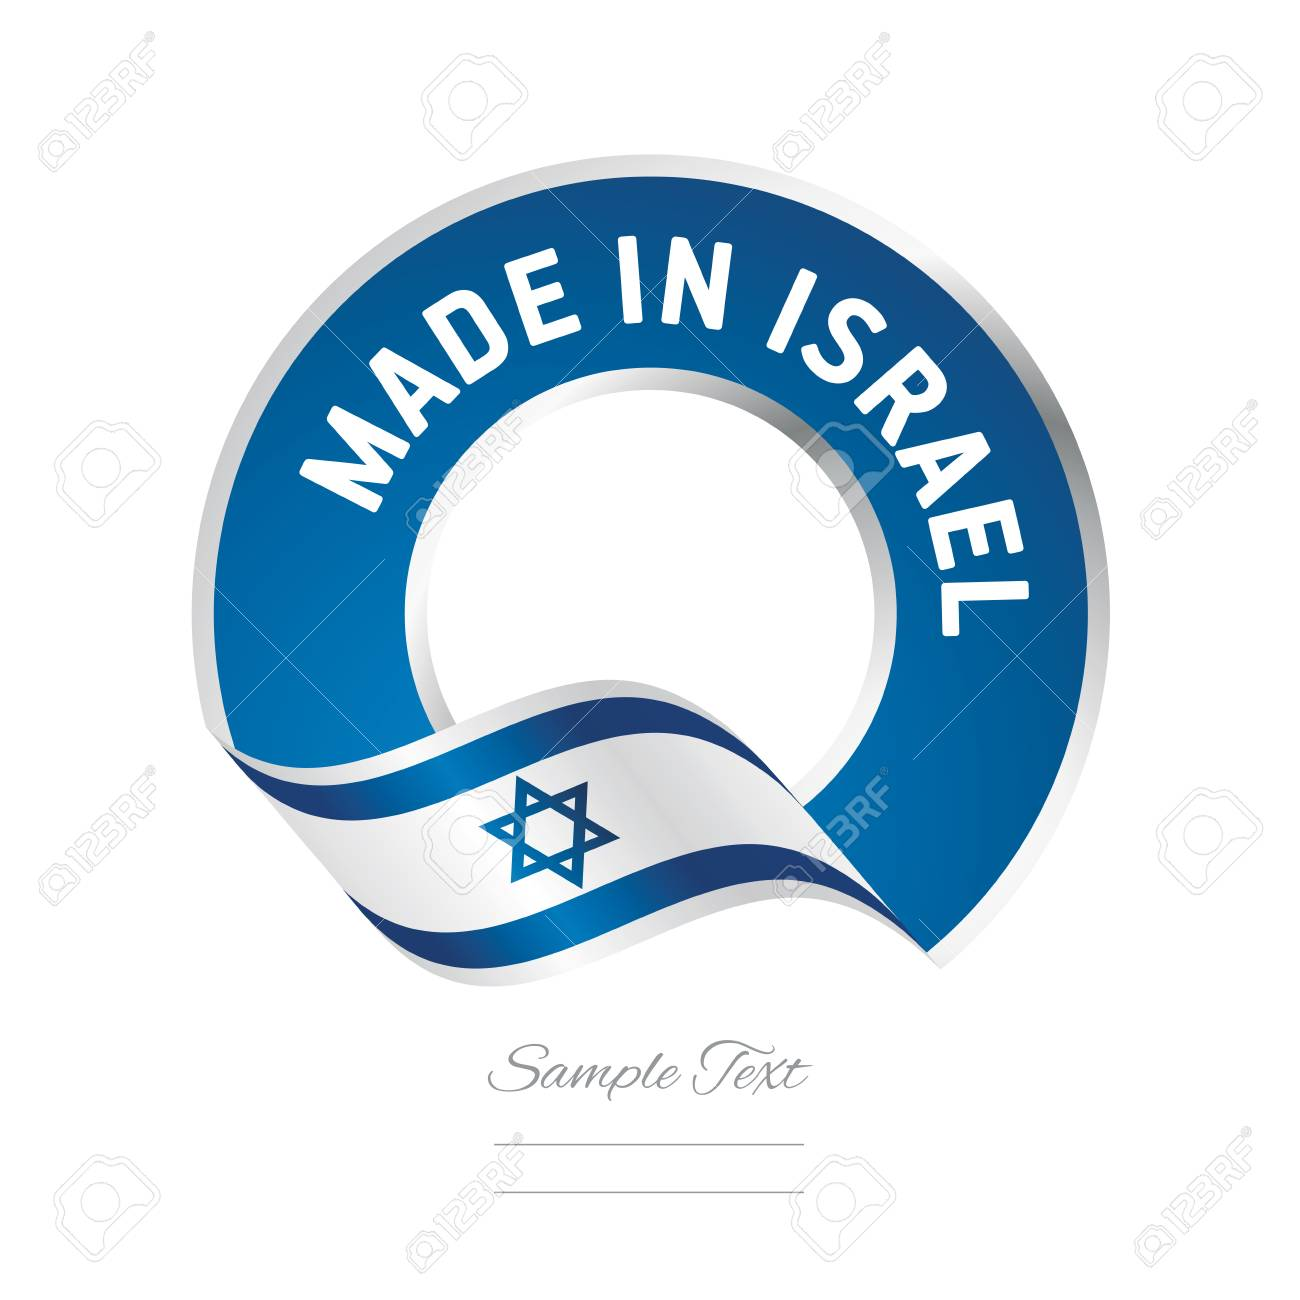 Made in Israel flag blue color label logo icon - 72371567